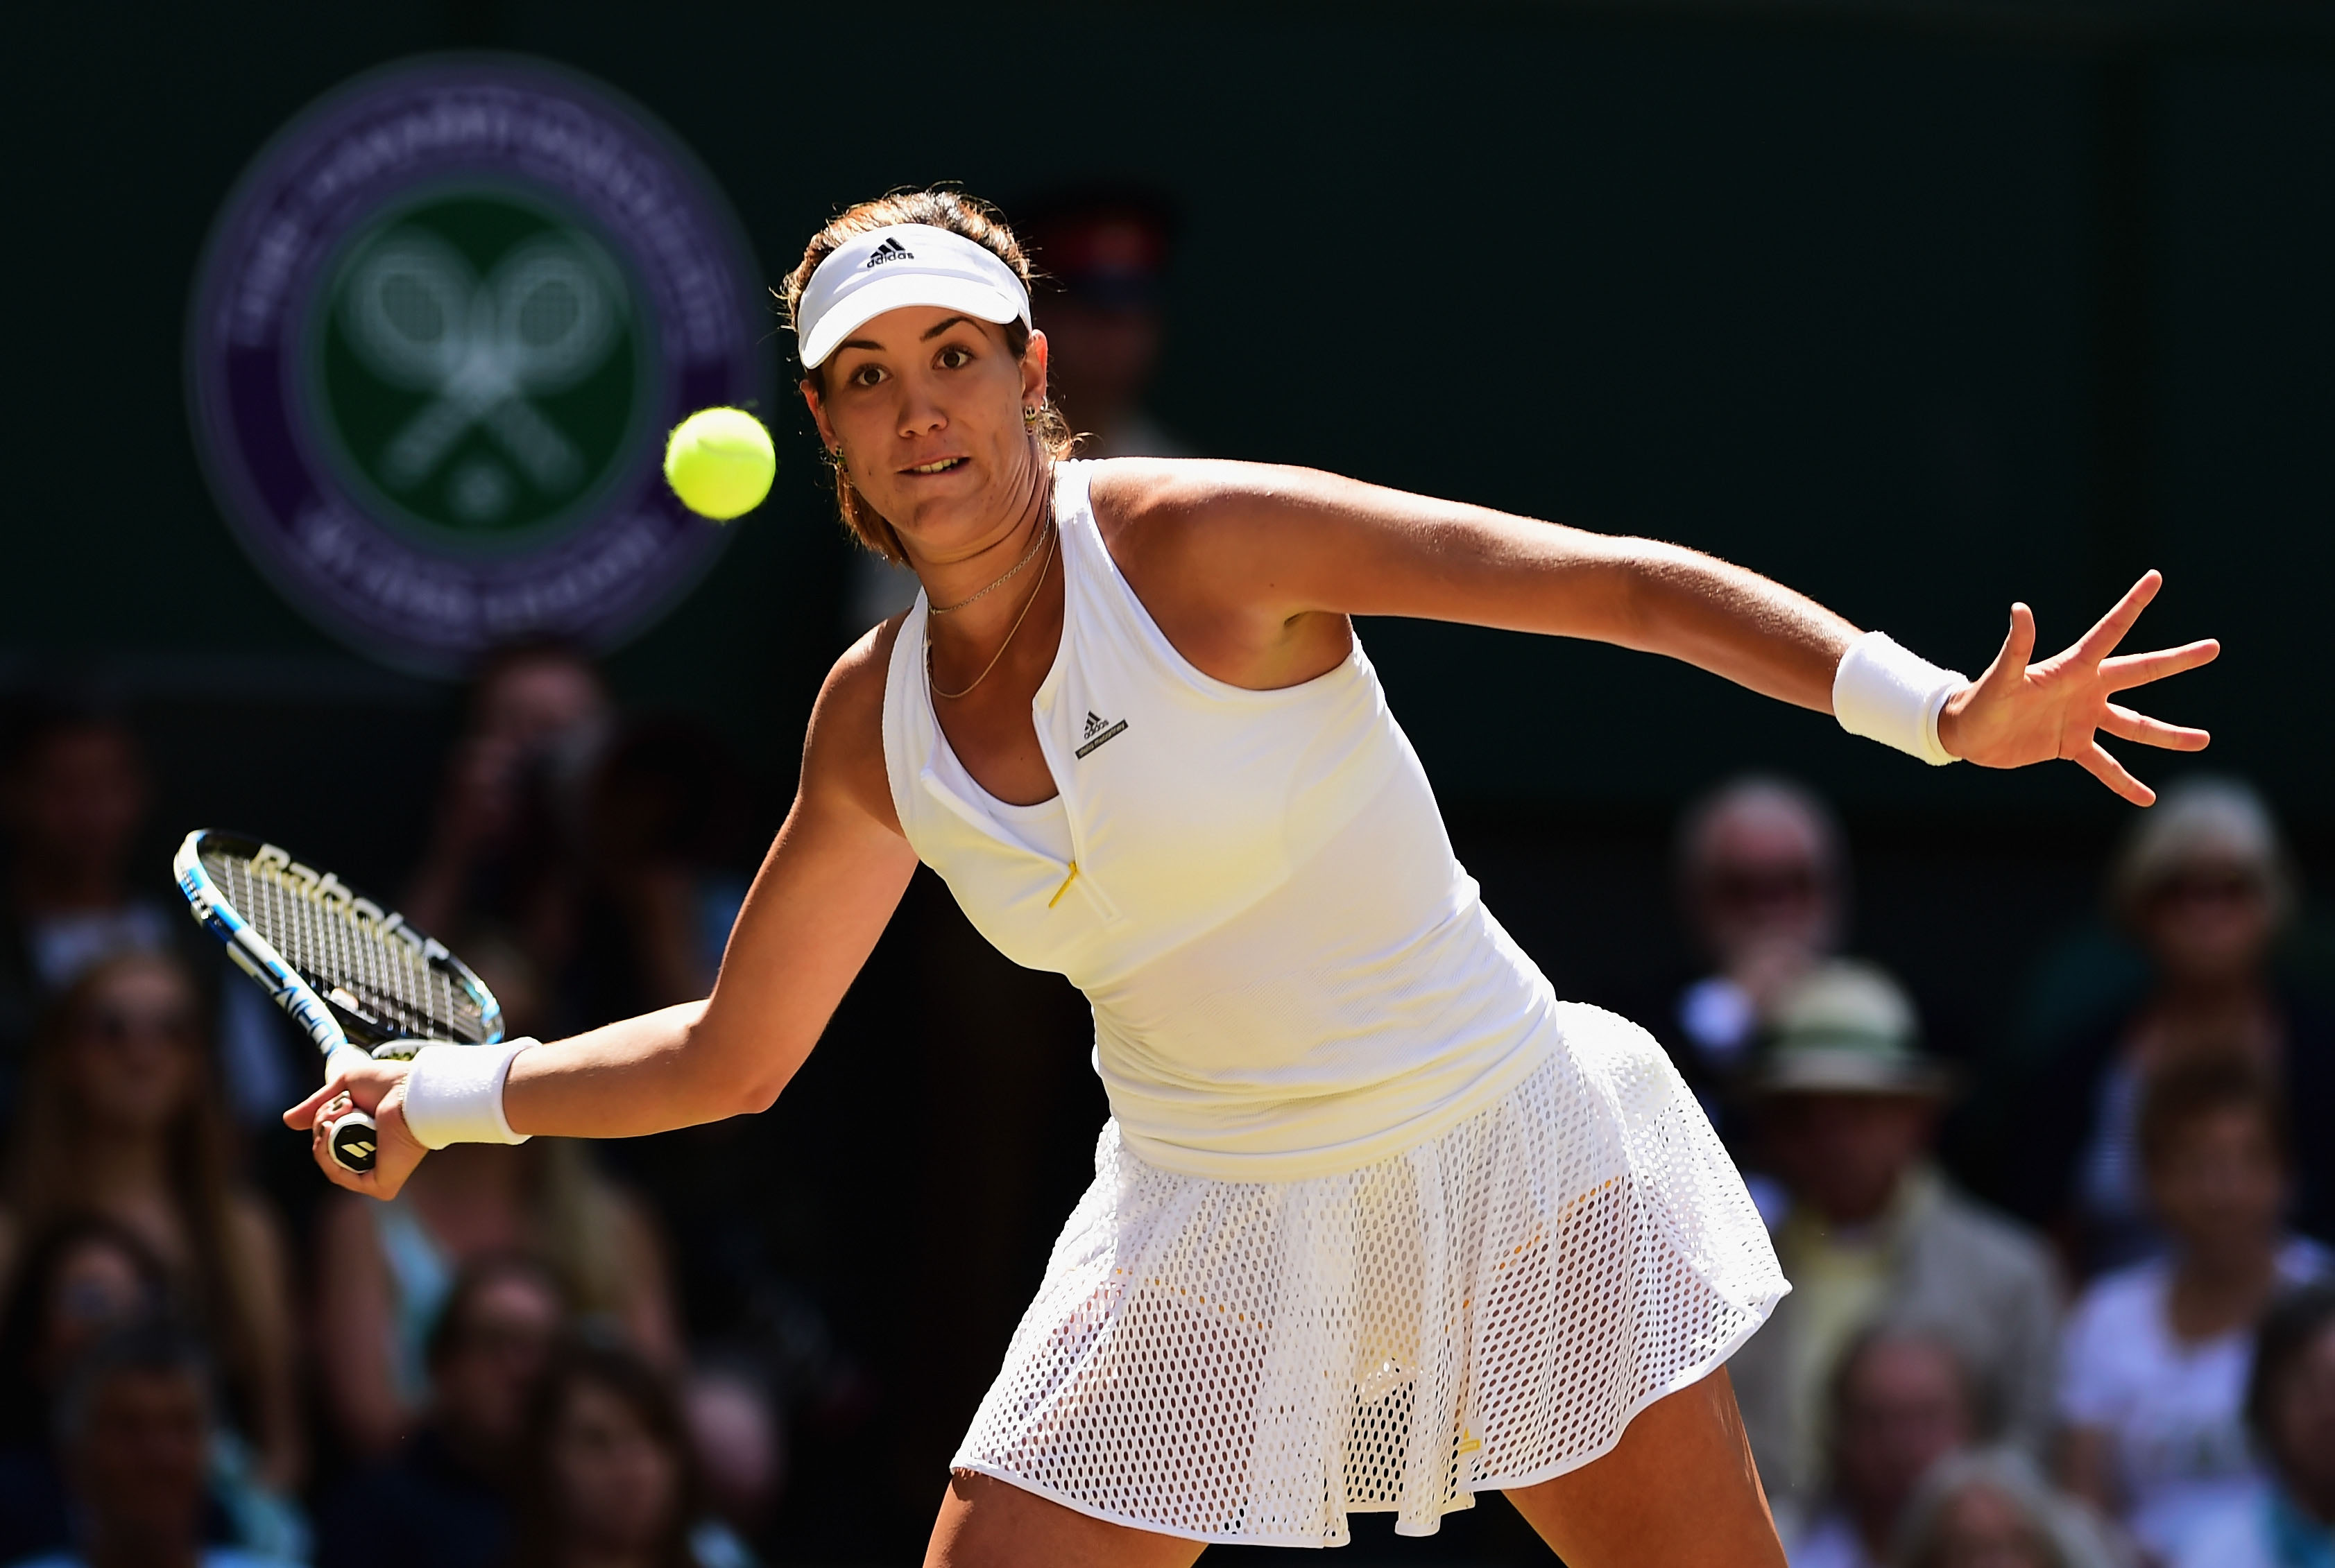 LONDON, ENGLAND - JULY 09: Garbine Muguruza of Spain plays a forehand in the Ladies Singles Semi Final match against Agnieszka Radwanska of Poland during day ten of the Wimbledon Lawn Tennis Championships at the All England Lawn Tennis and Croquet Club on July 9, 2015 in London, England. (Photo by Shaun Botterill/Getty Images)